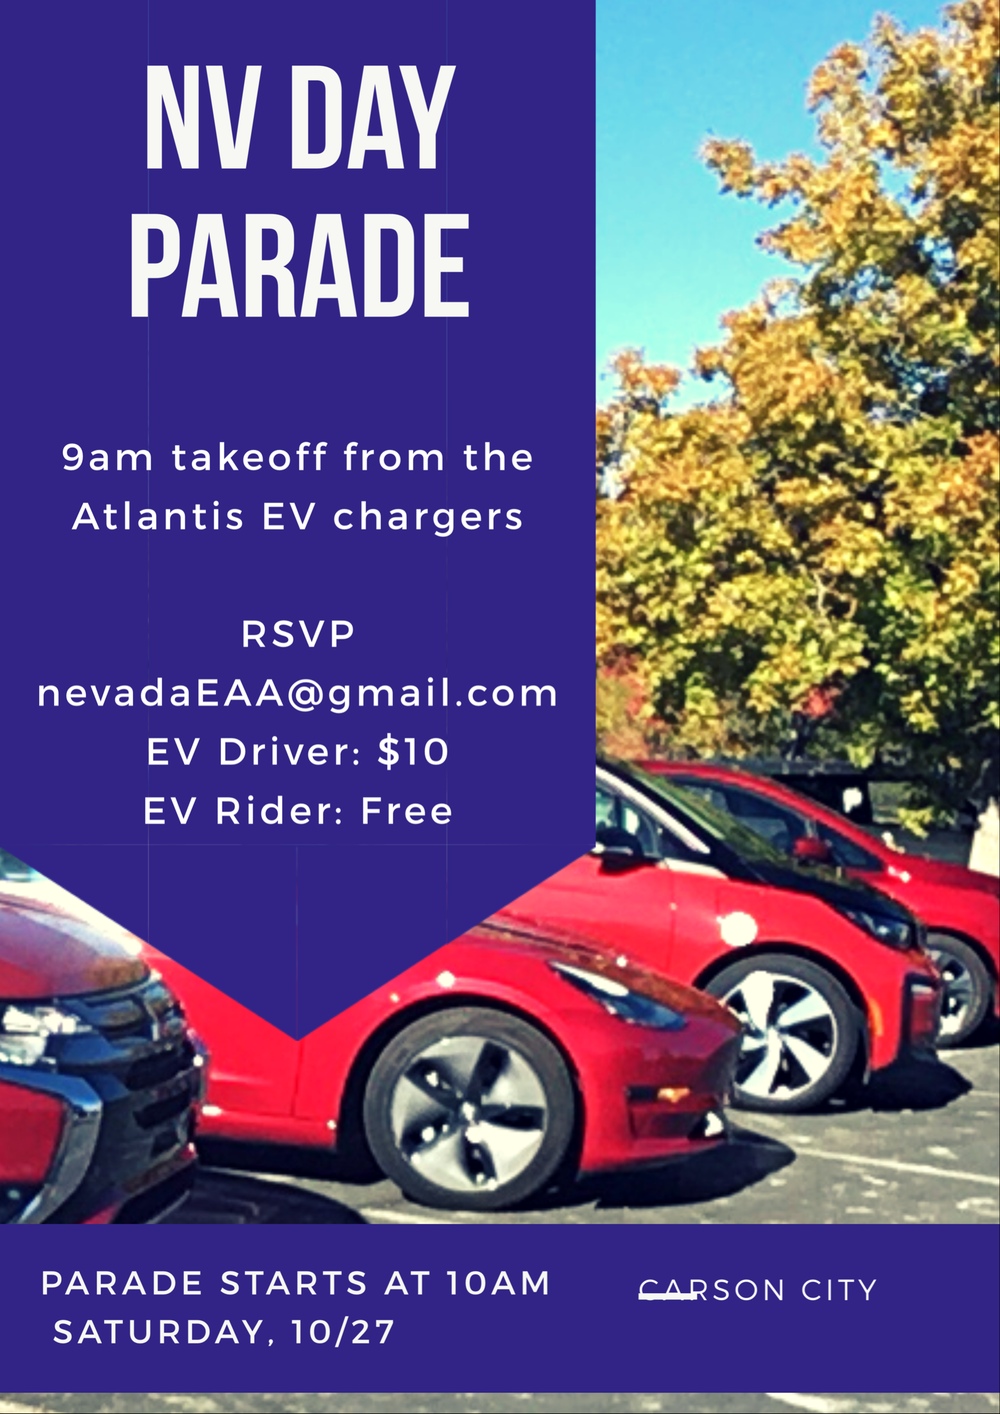 We hosted a fleet of electric vehicles for the Nevada Day parade in Carson City on 10-27-18! - We raced each other in the parade. It was awesome!